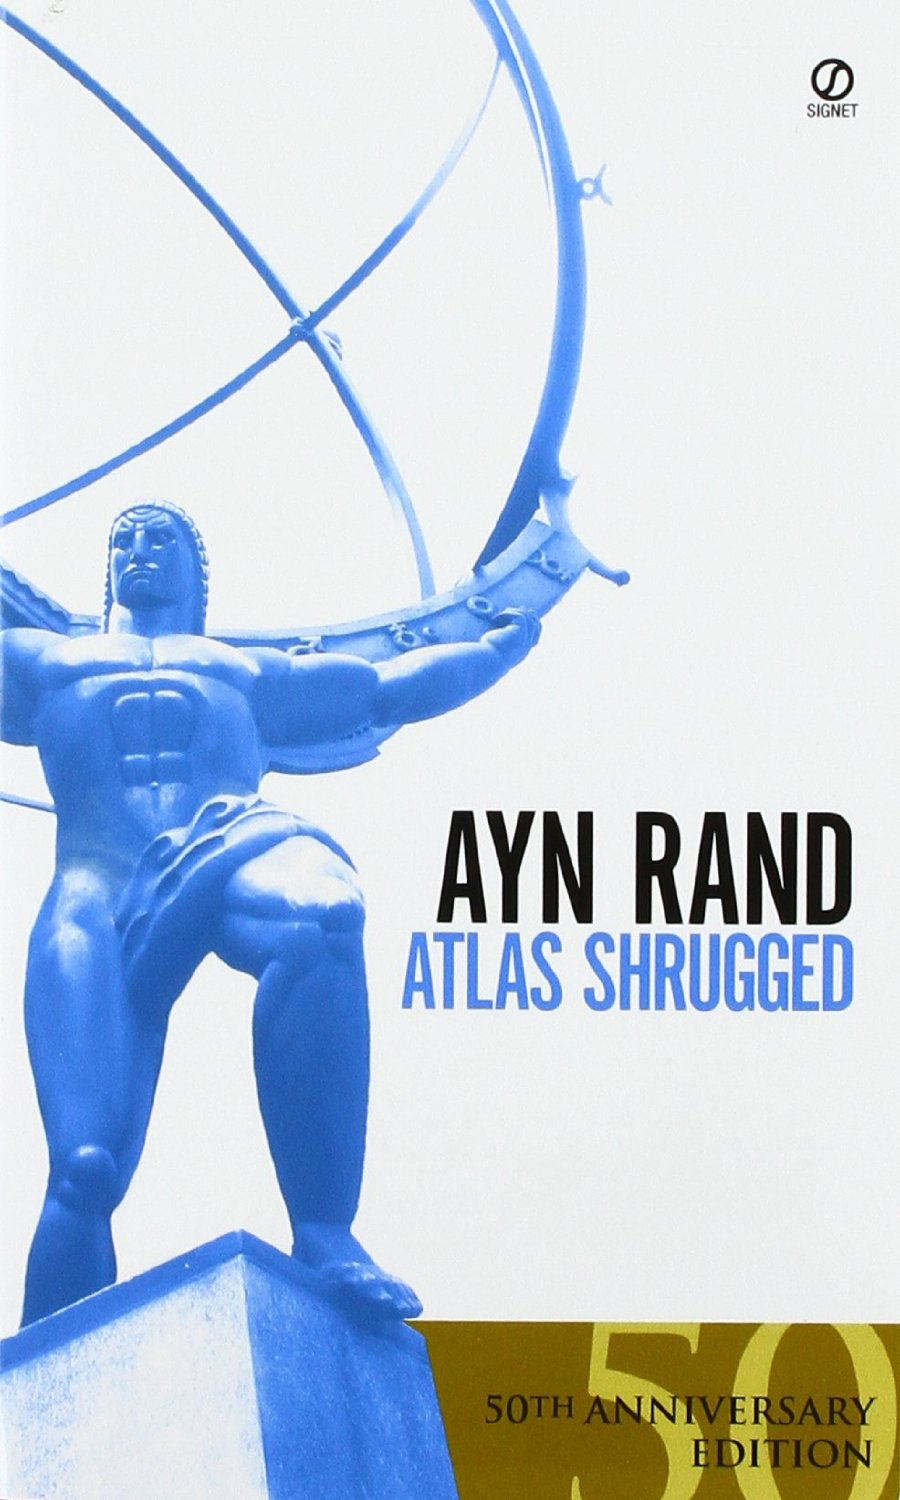 Book Review: Atlas Shrugged by Ayn Rand